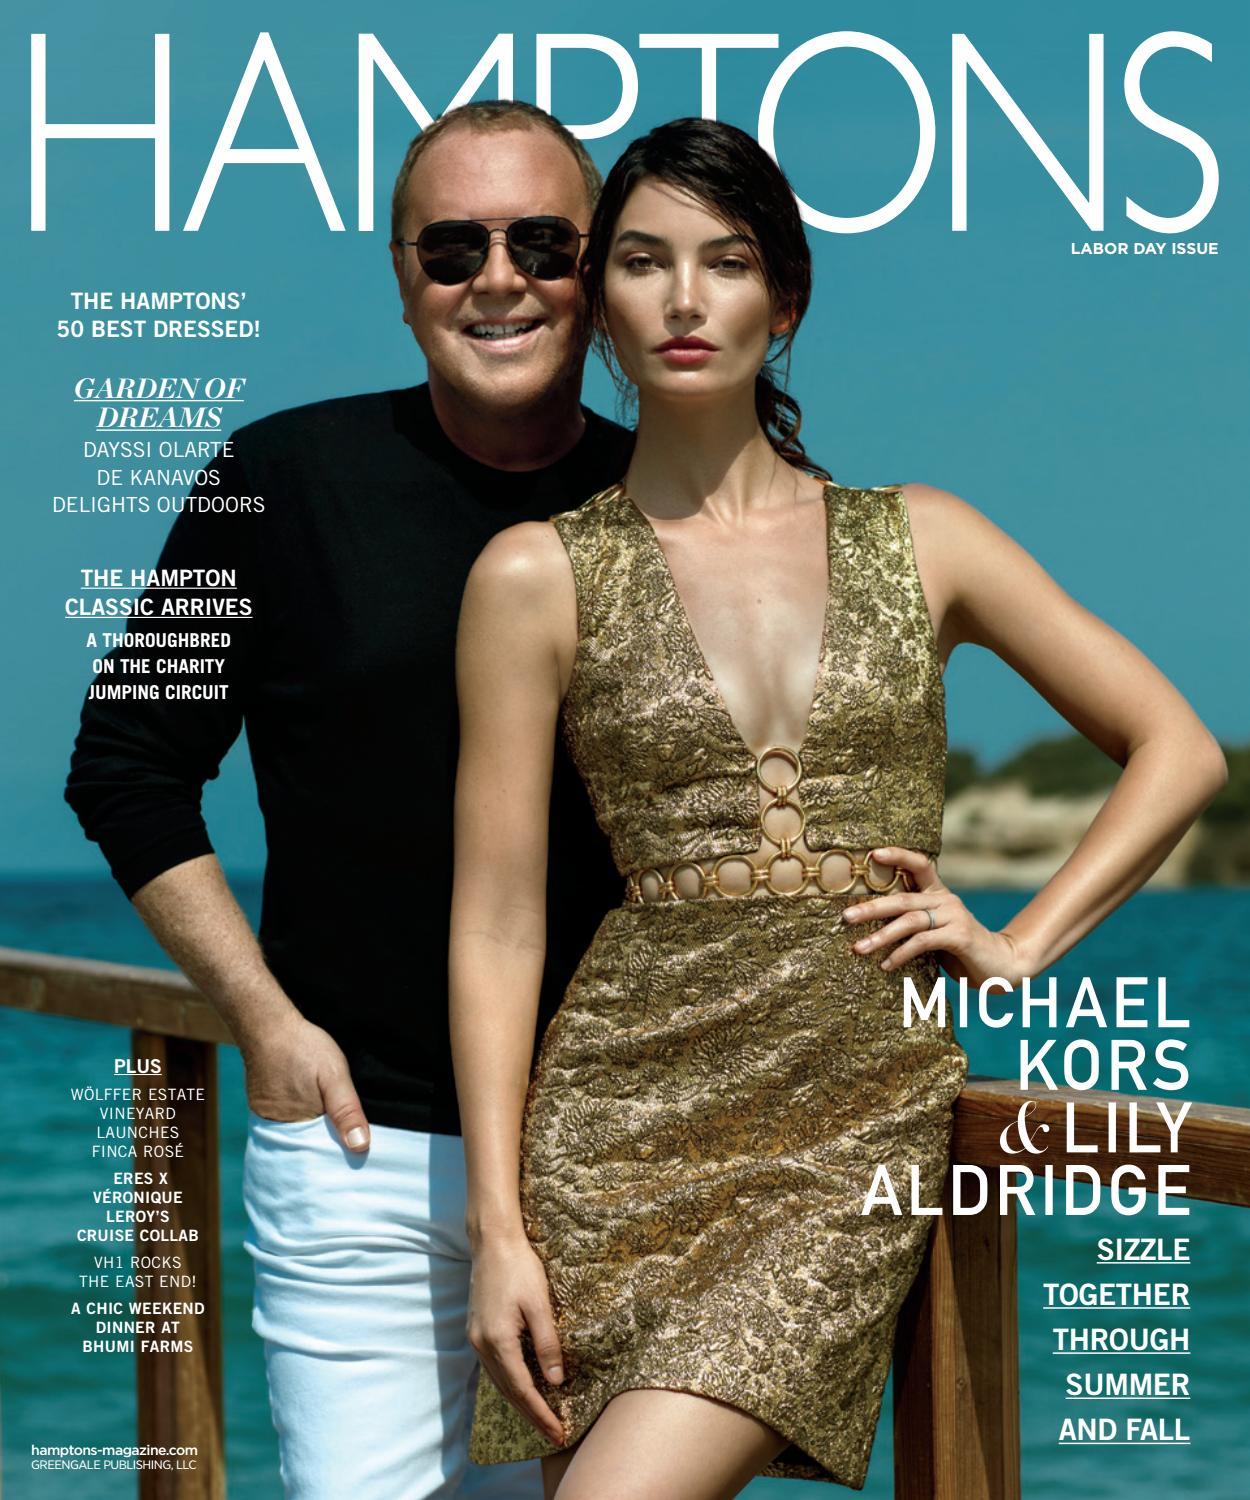 d69439d83ba6 Hamptons - 2016 - Issue 11 - Labor Day - Michael Kors + Lily Aldridge by  MODERN LUXURY - issuu